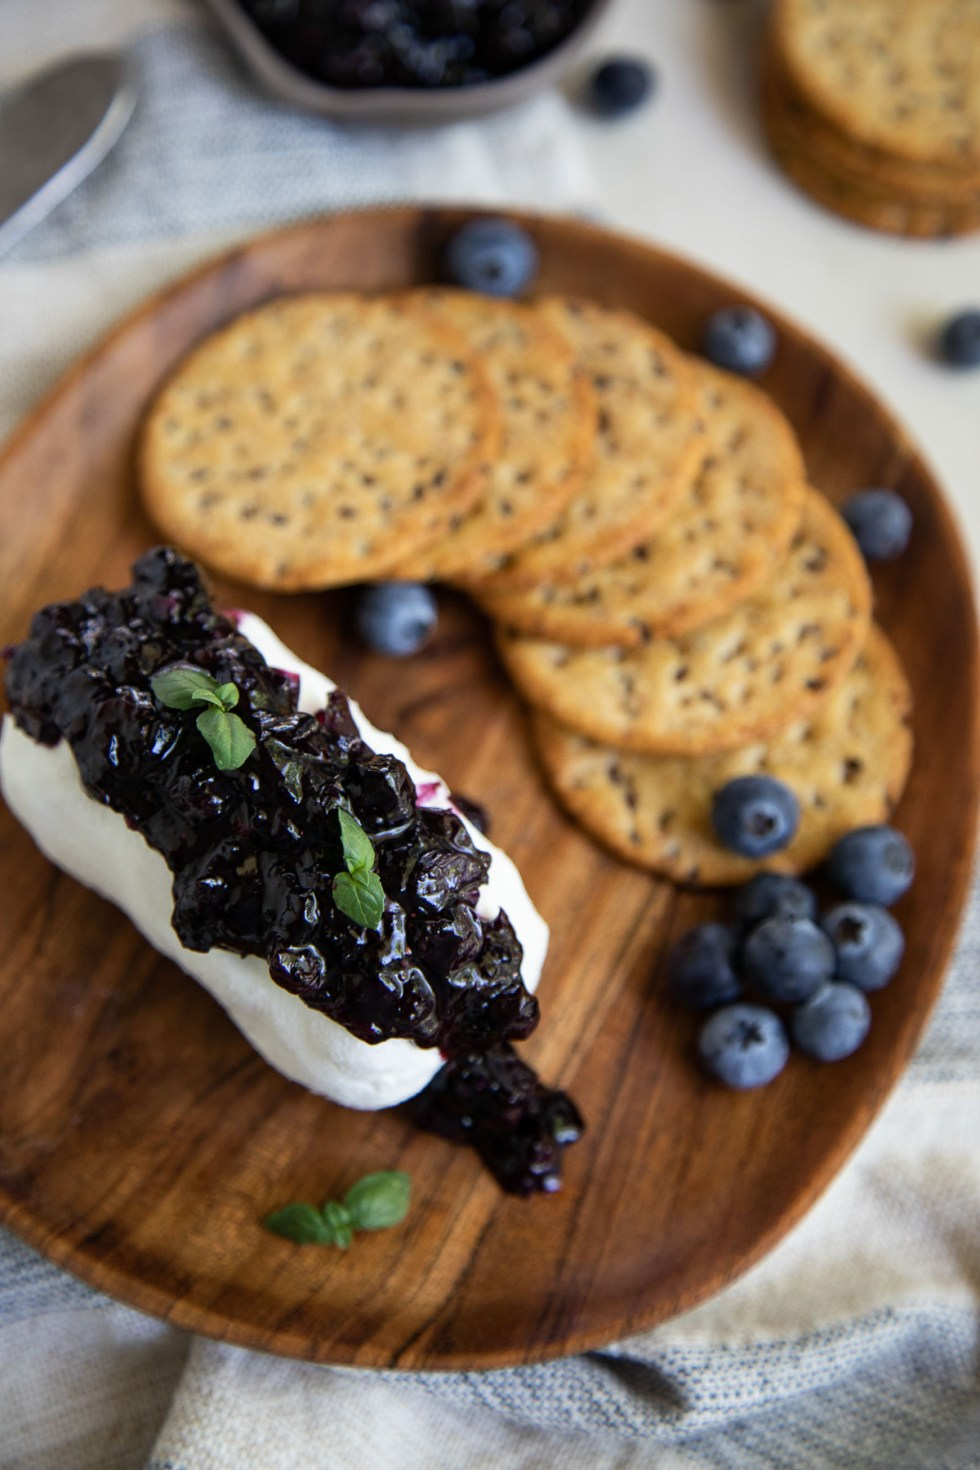 Blueberry Compote + Goat Cheese Appetizer